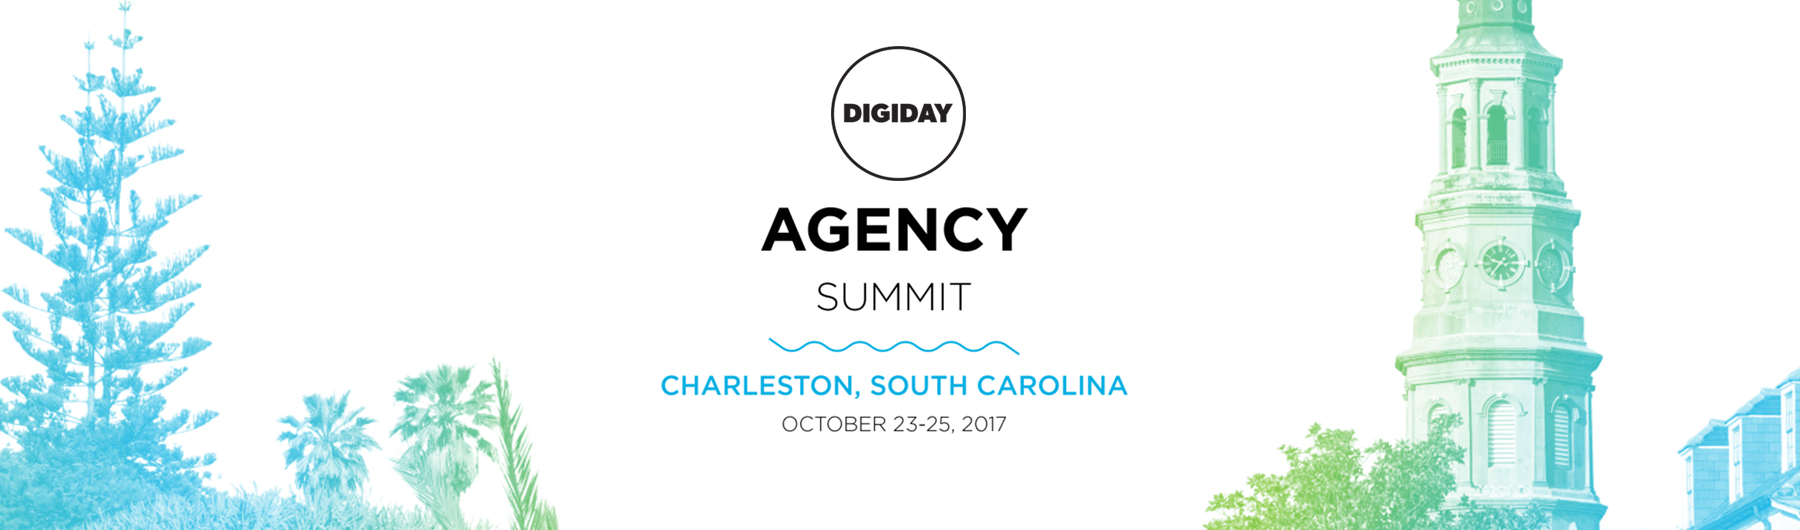 Digiday Agency Summit October 2017